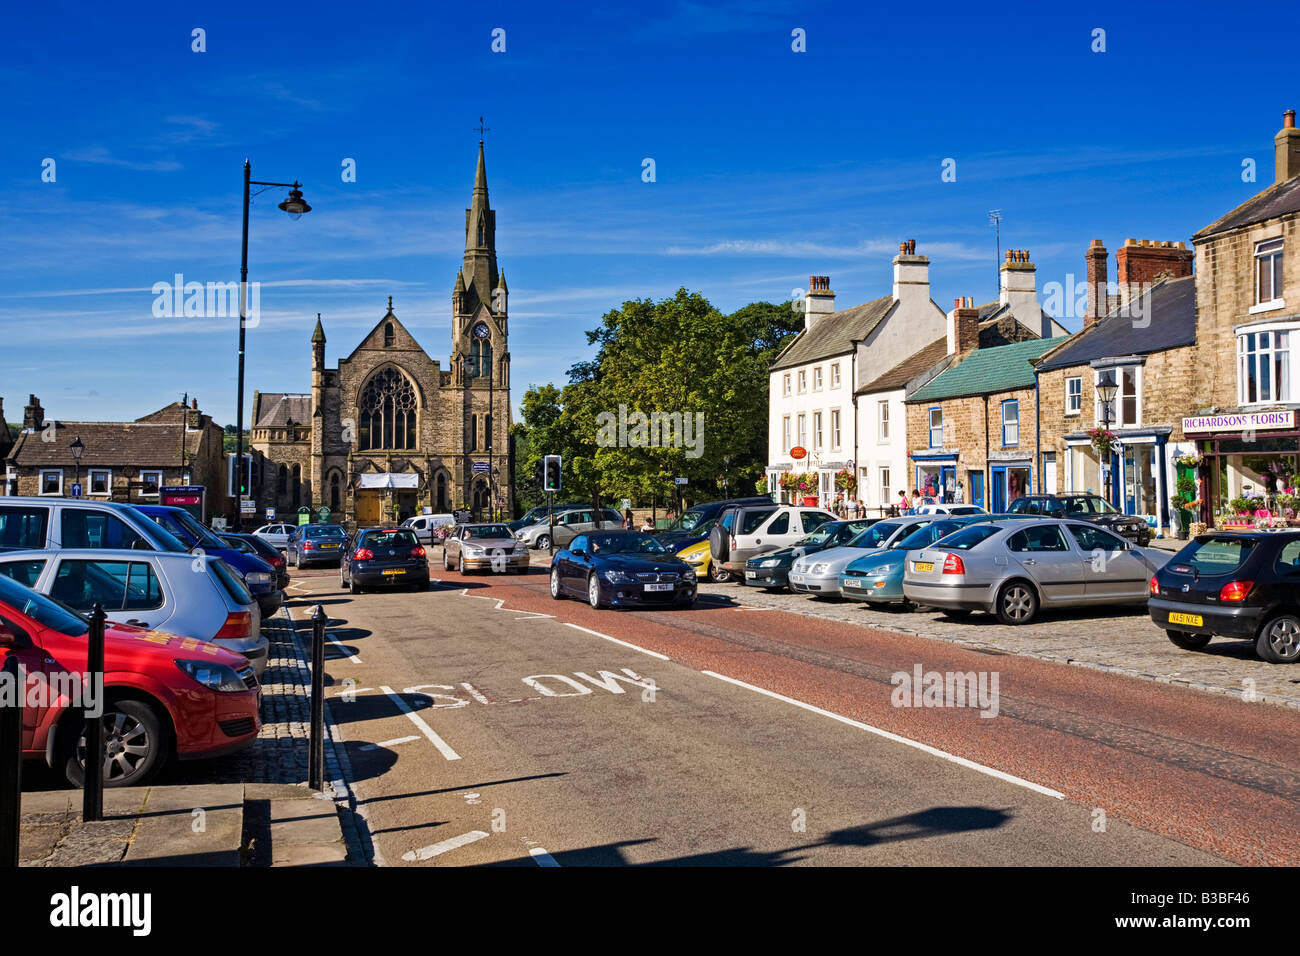 Galgate street in Barnard Castle town, Teesdale, County Durham, England, UK in summer - Stock Image